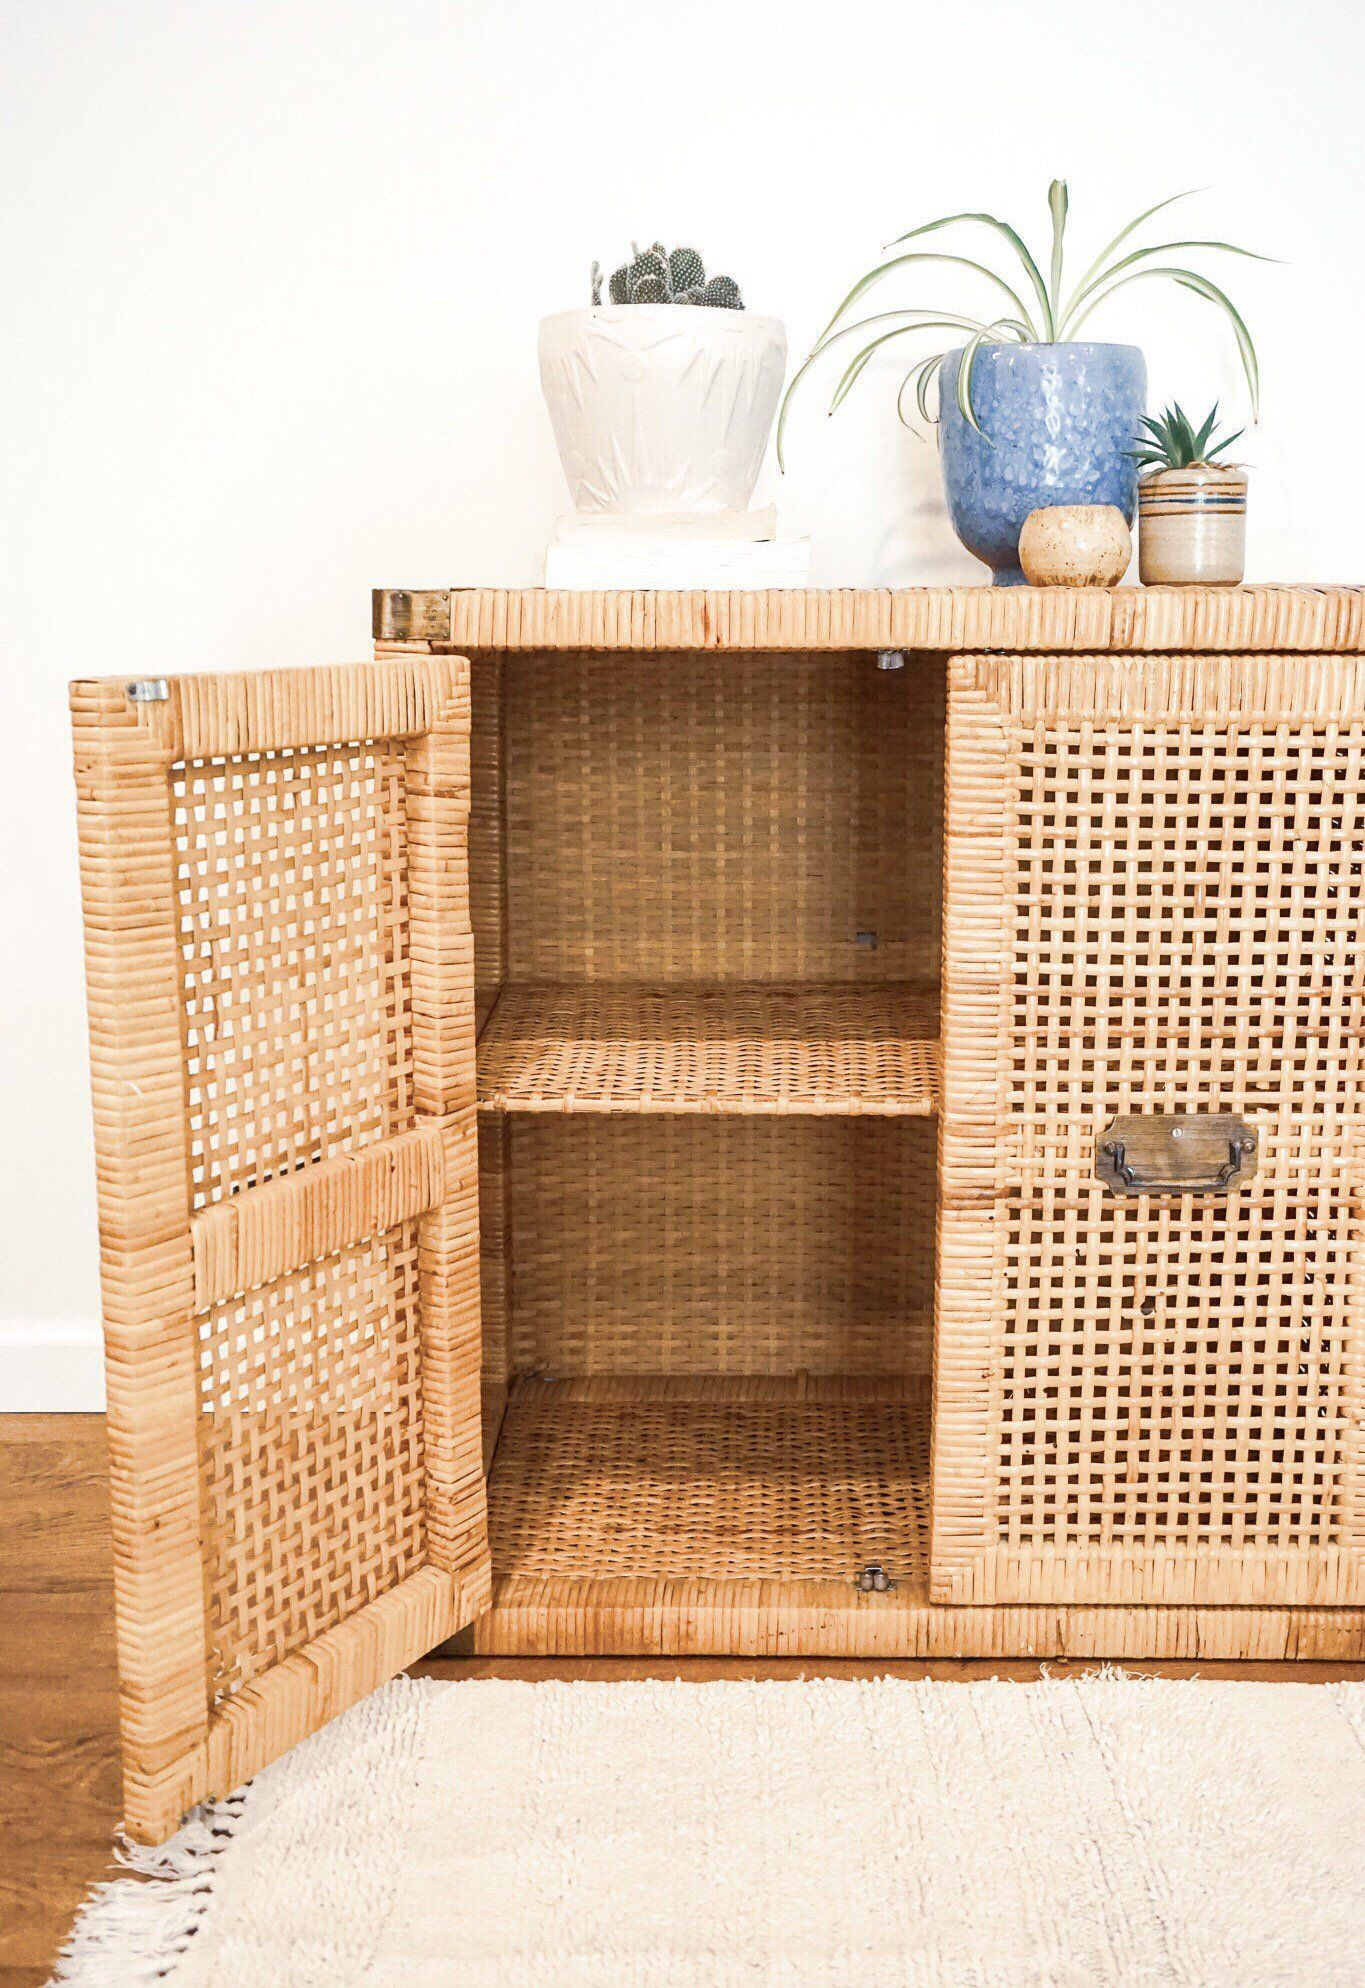 Vintage Wicker Rattan Woven Bohemian Cabinet With Brass Hardware